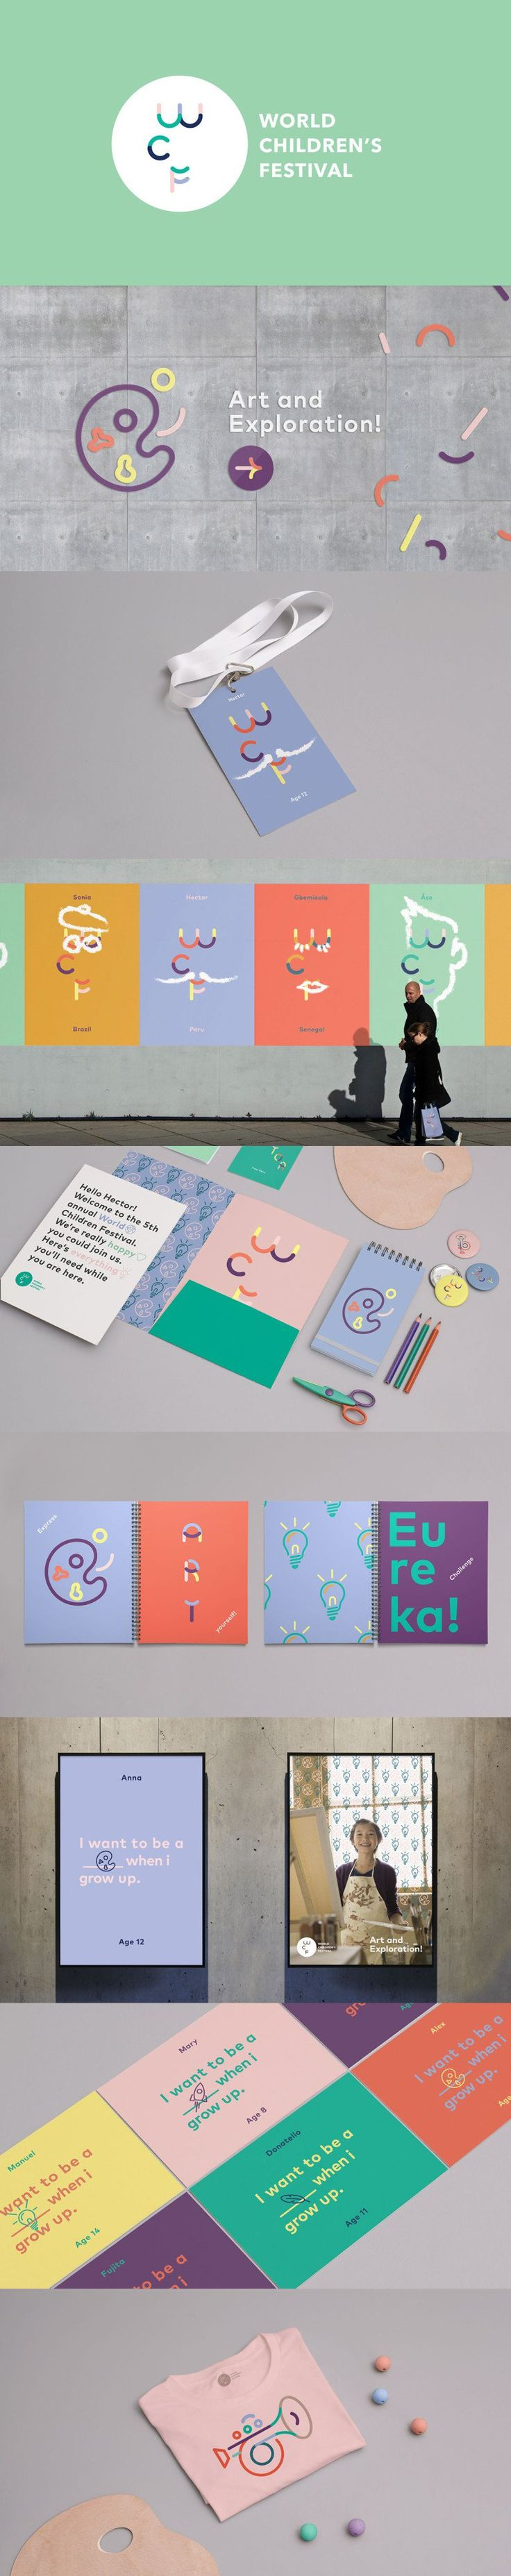 Corporate Brand Identities: A Showcase Of 40 Stunning Brand Kits To Inspire You – Design School